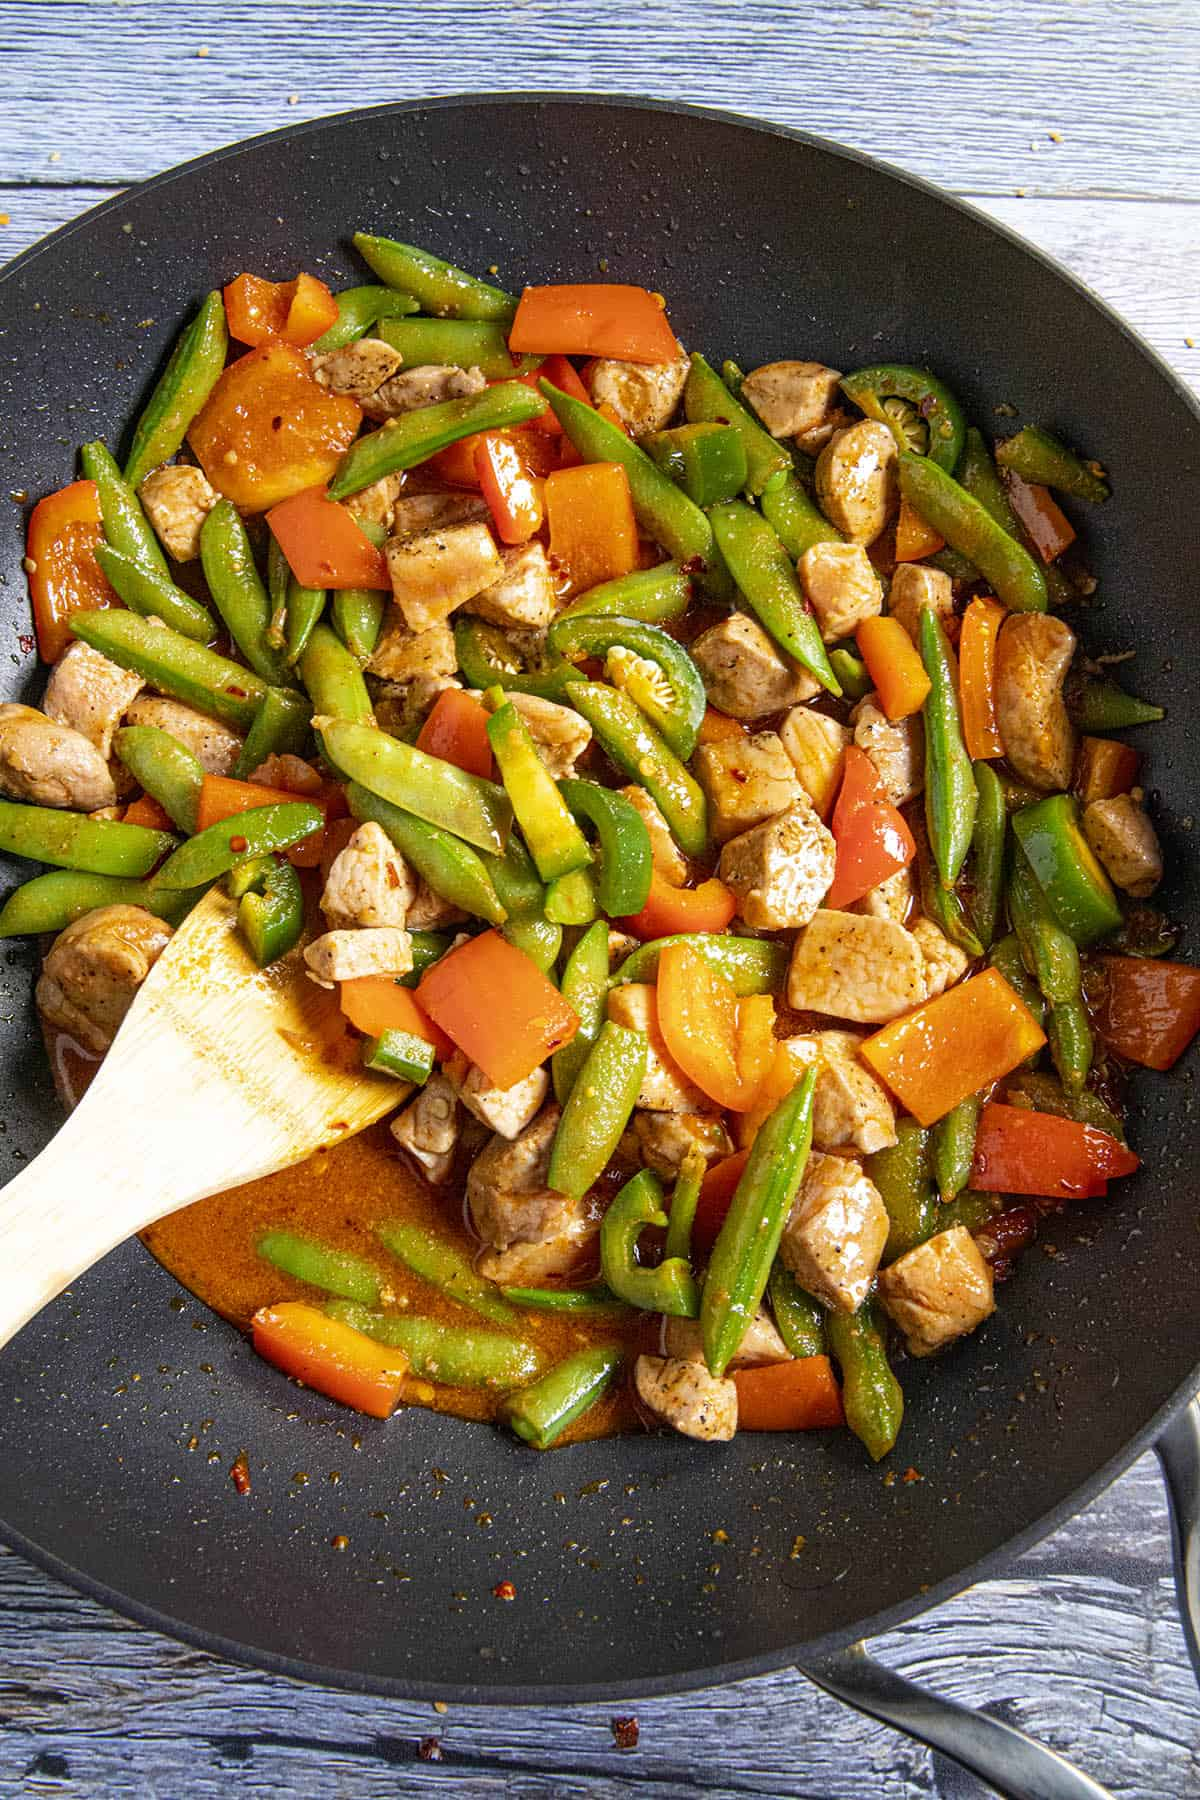 Stirring the stir fry sauce into the pan with the pork and vegetables